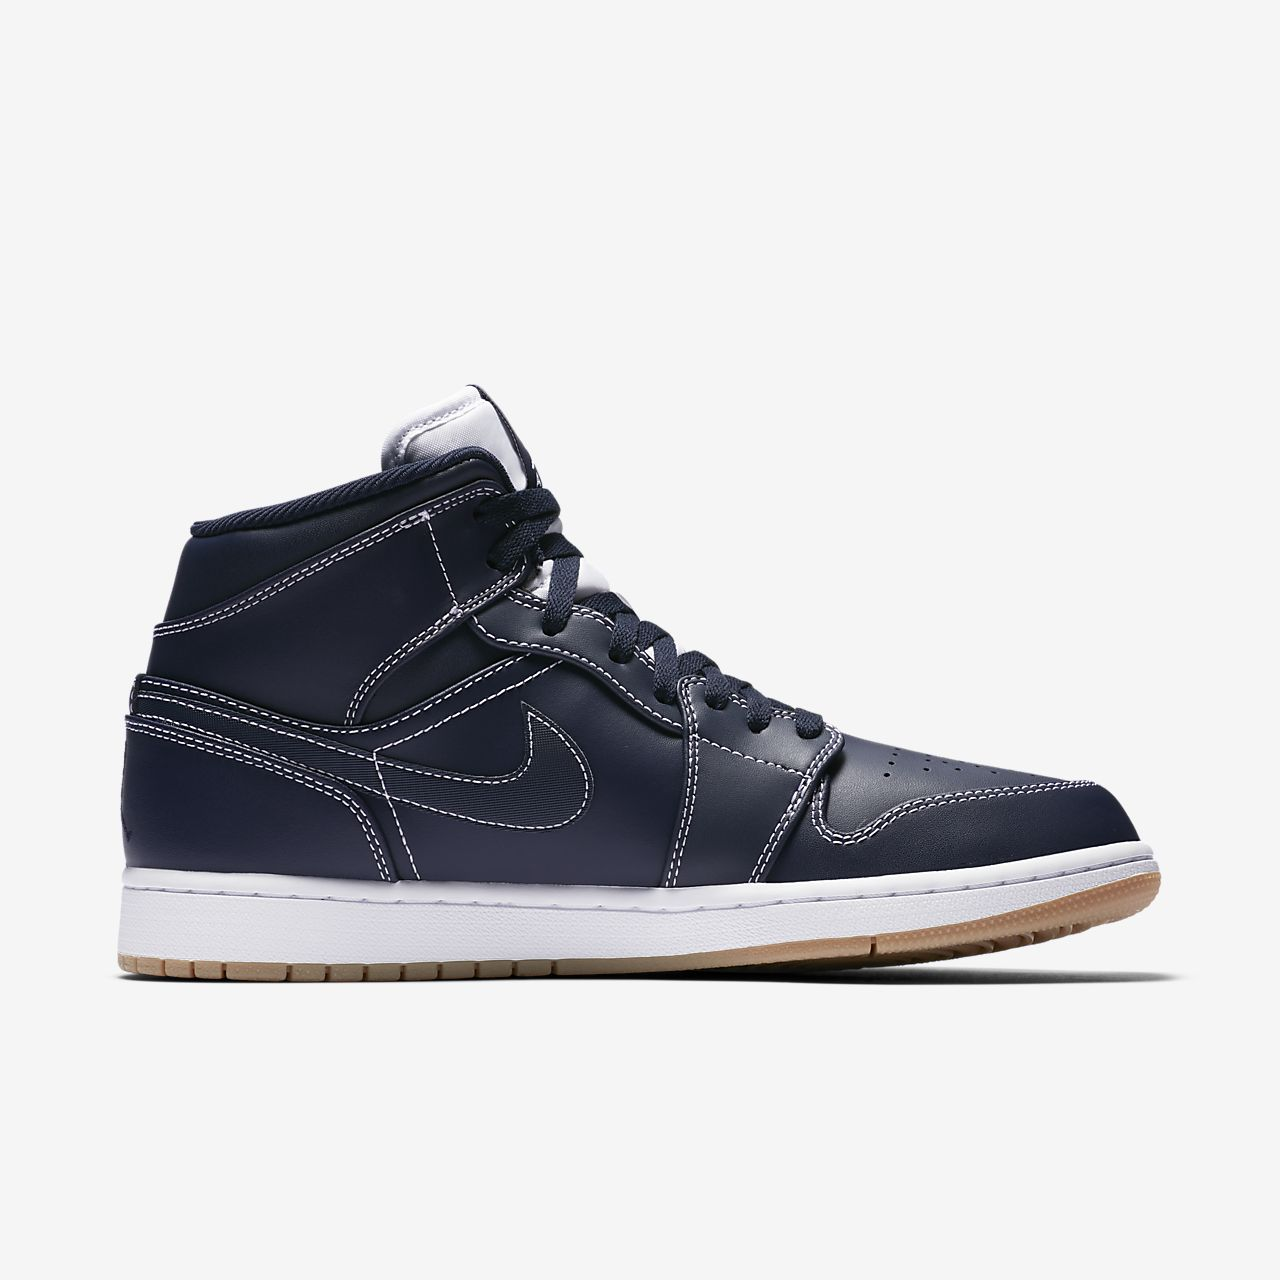 nike air jordan mid shoes men